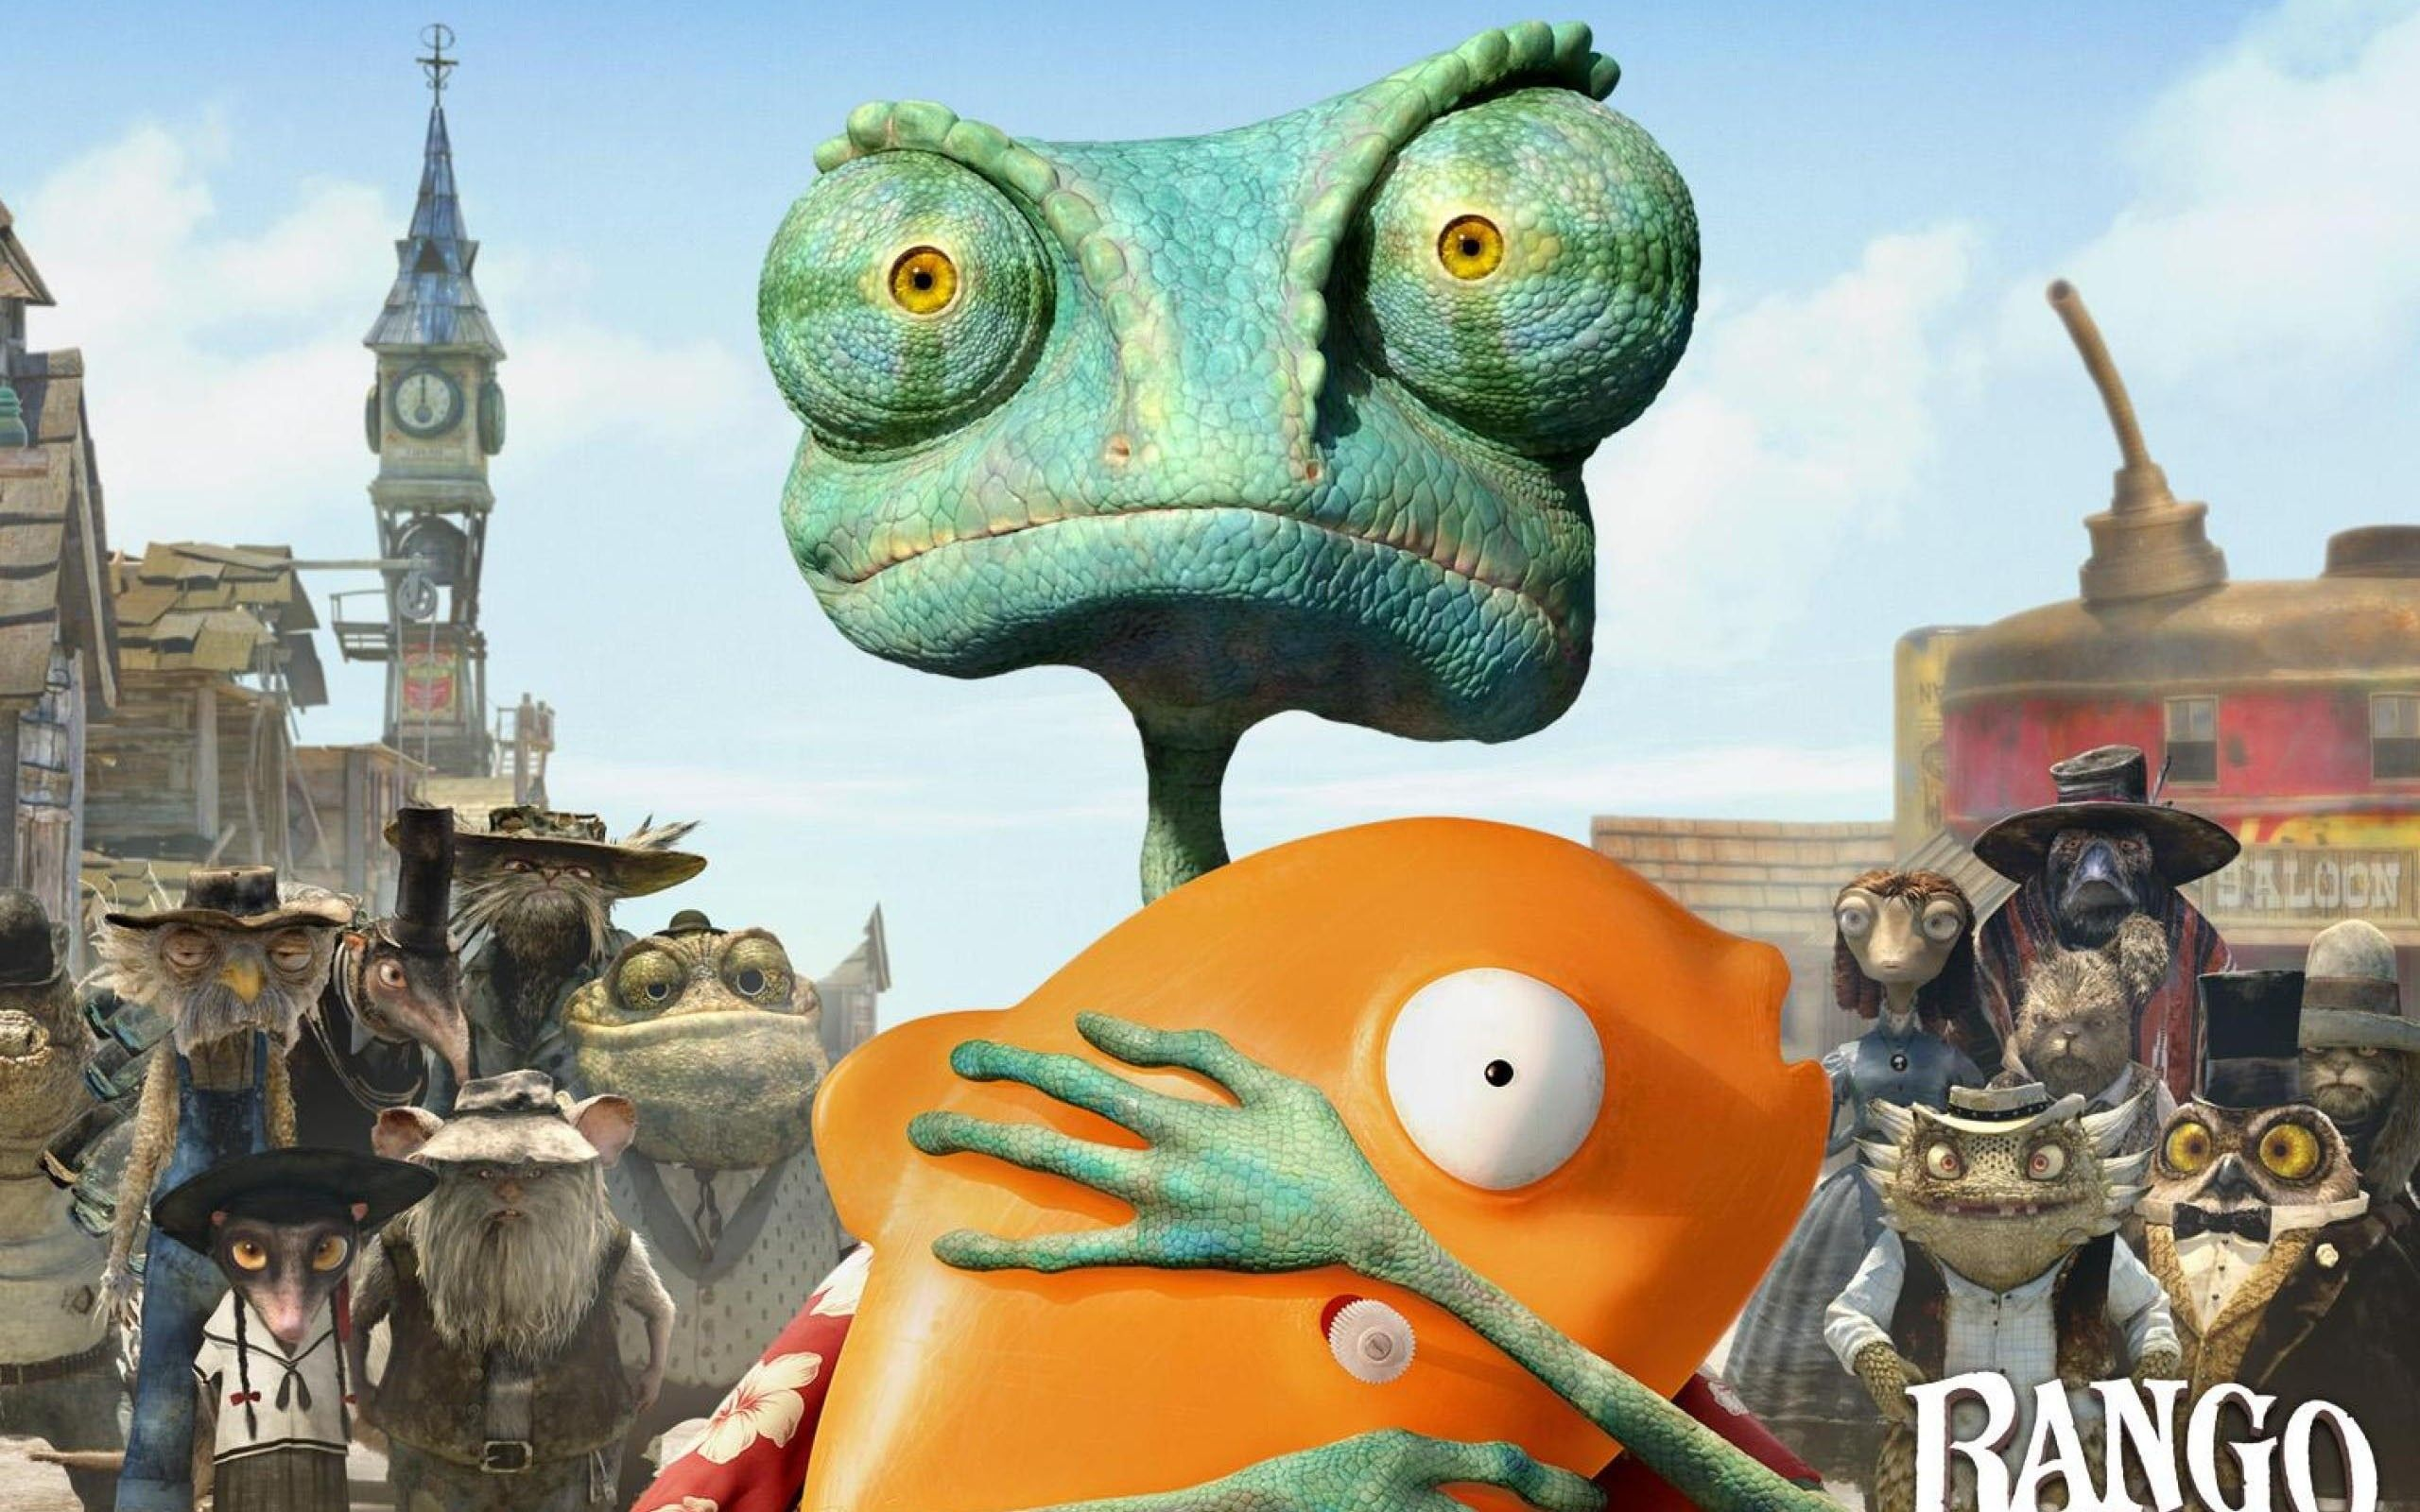 Rango Savior Of The Desert Movie Wallpapers Hd Wallpaper Download For Ipad And Iphone Widescreen 2160p Uhd 4k Hd Animated Movies Kid Movies Animation Film